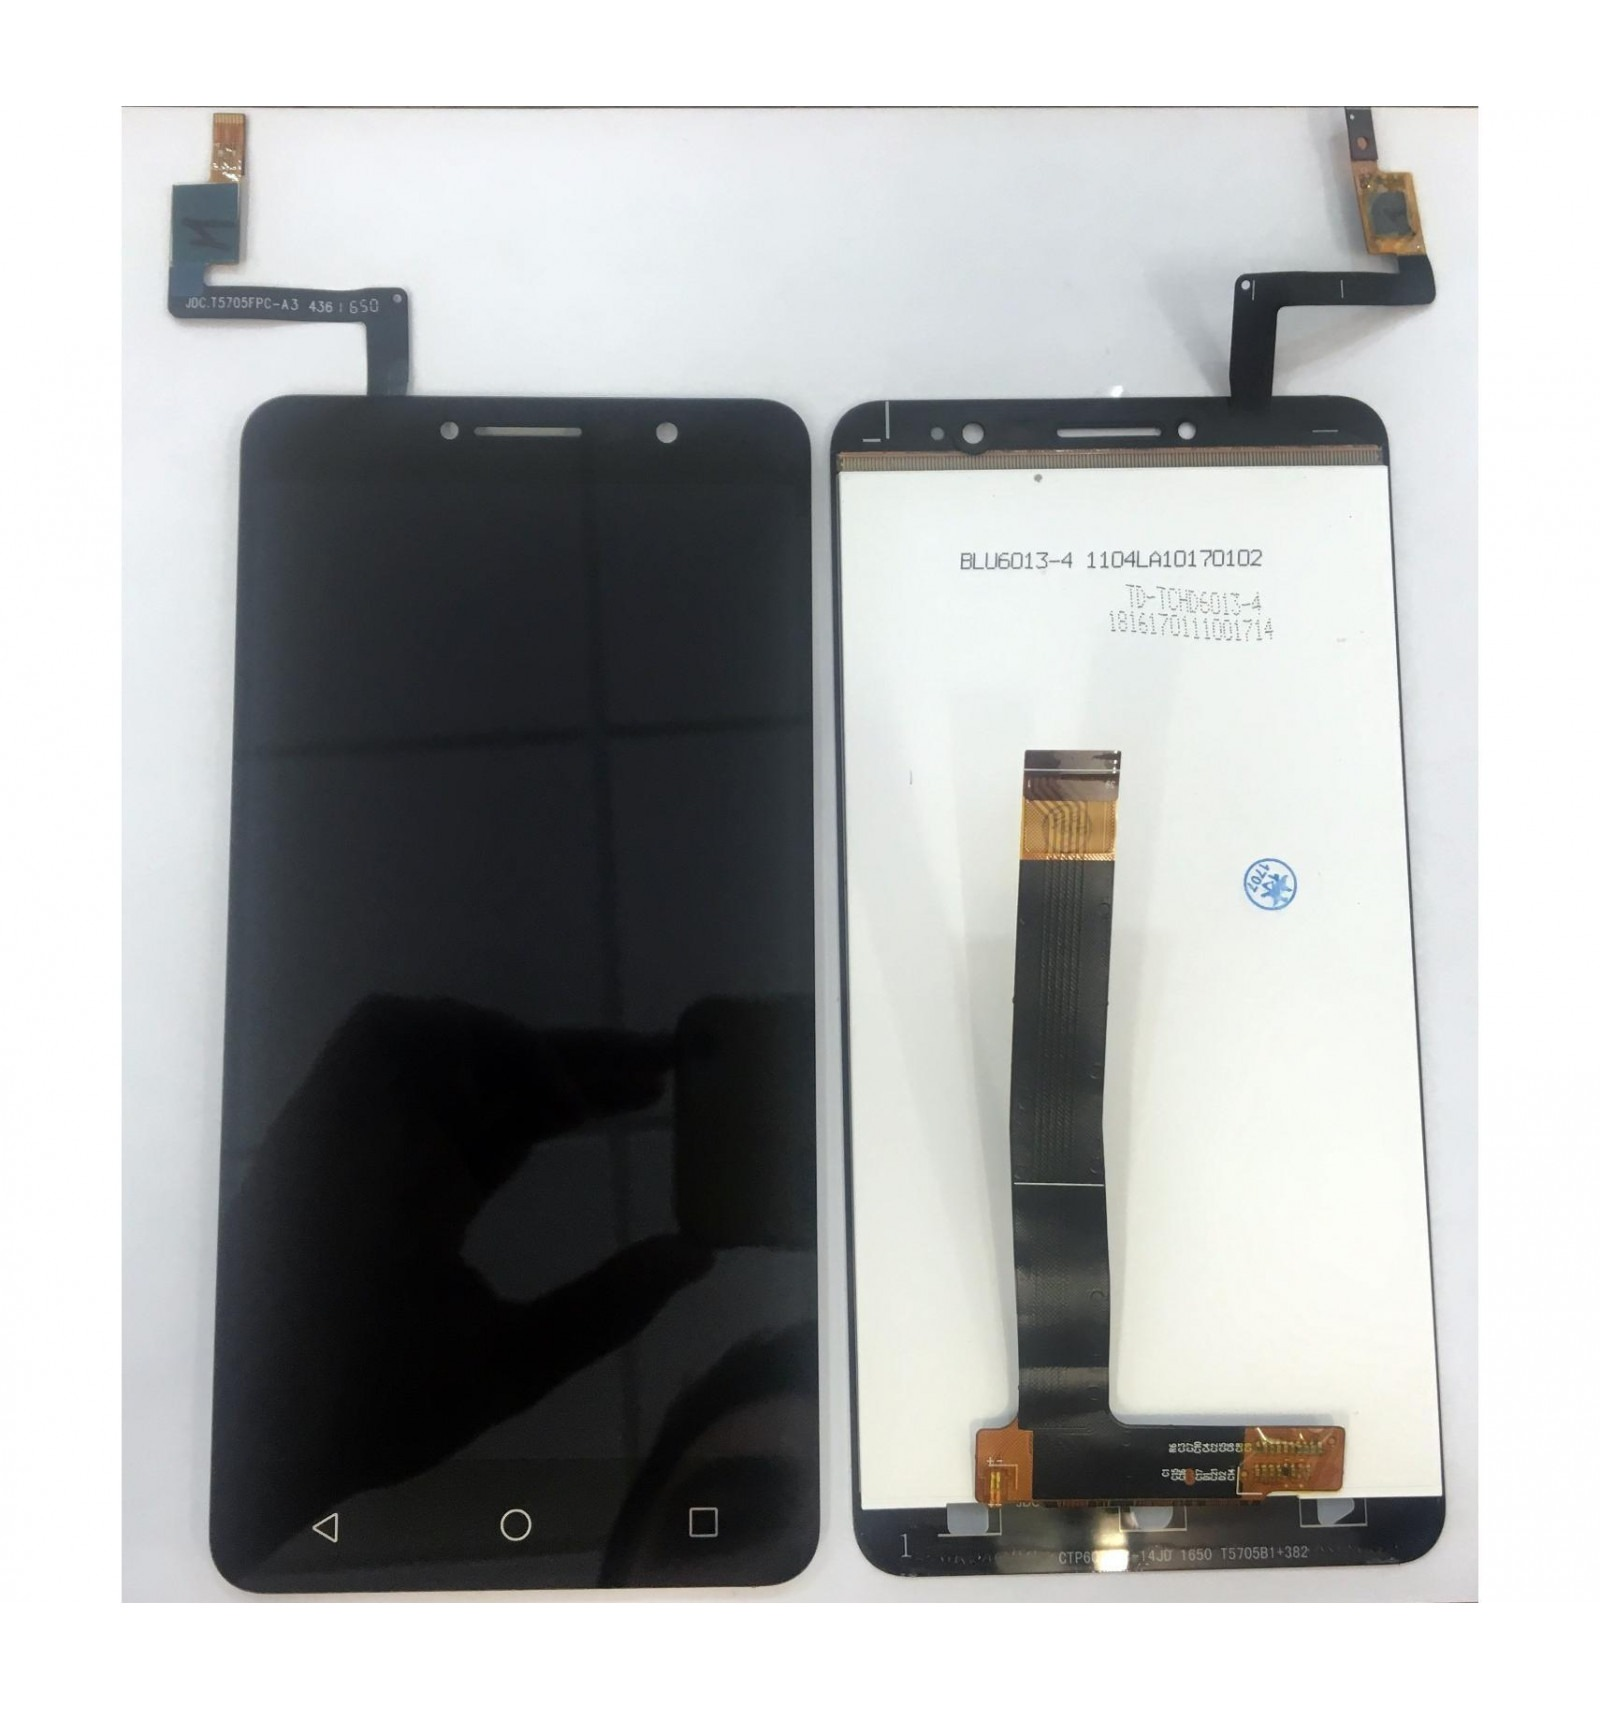 alcatel a3 xl 9008d 9008x original display lcd with black touch screen. Black Bedroom Furniture Sets. Home Design Ideas